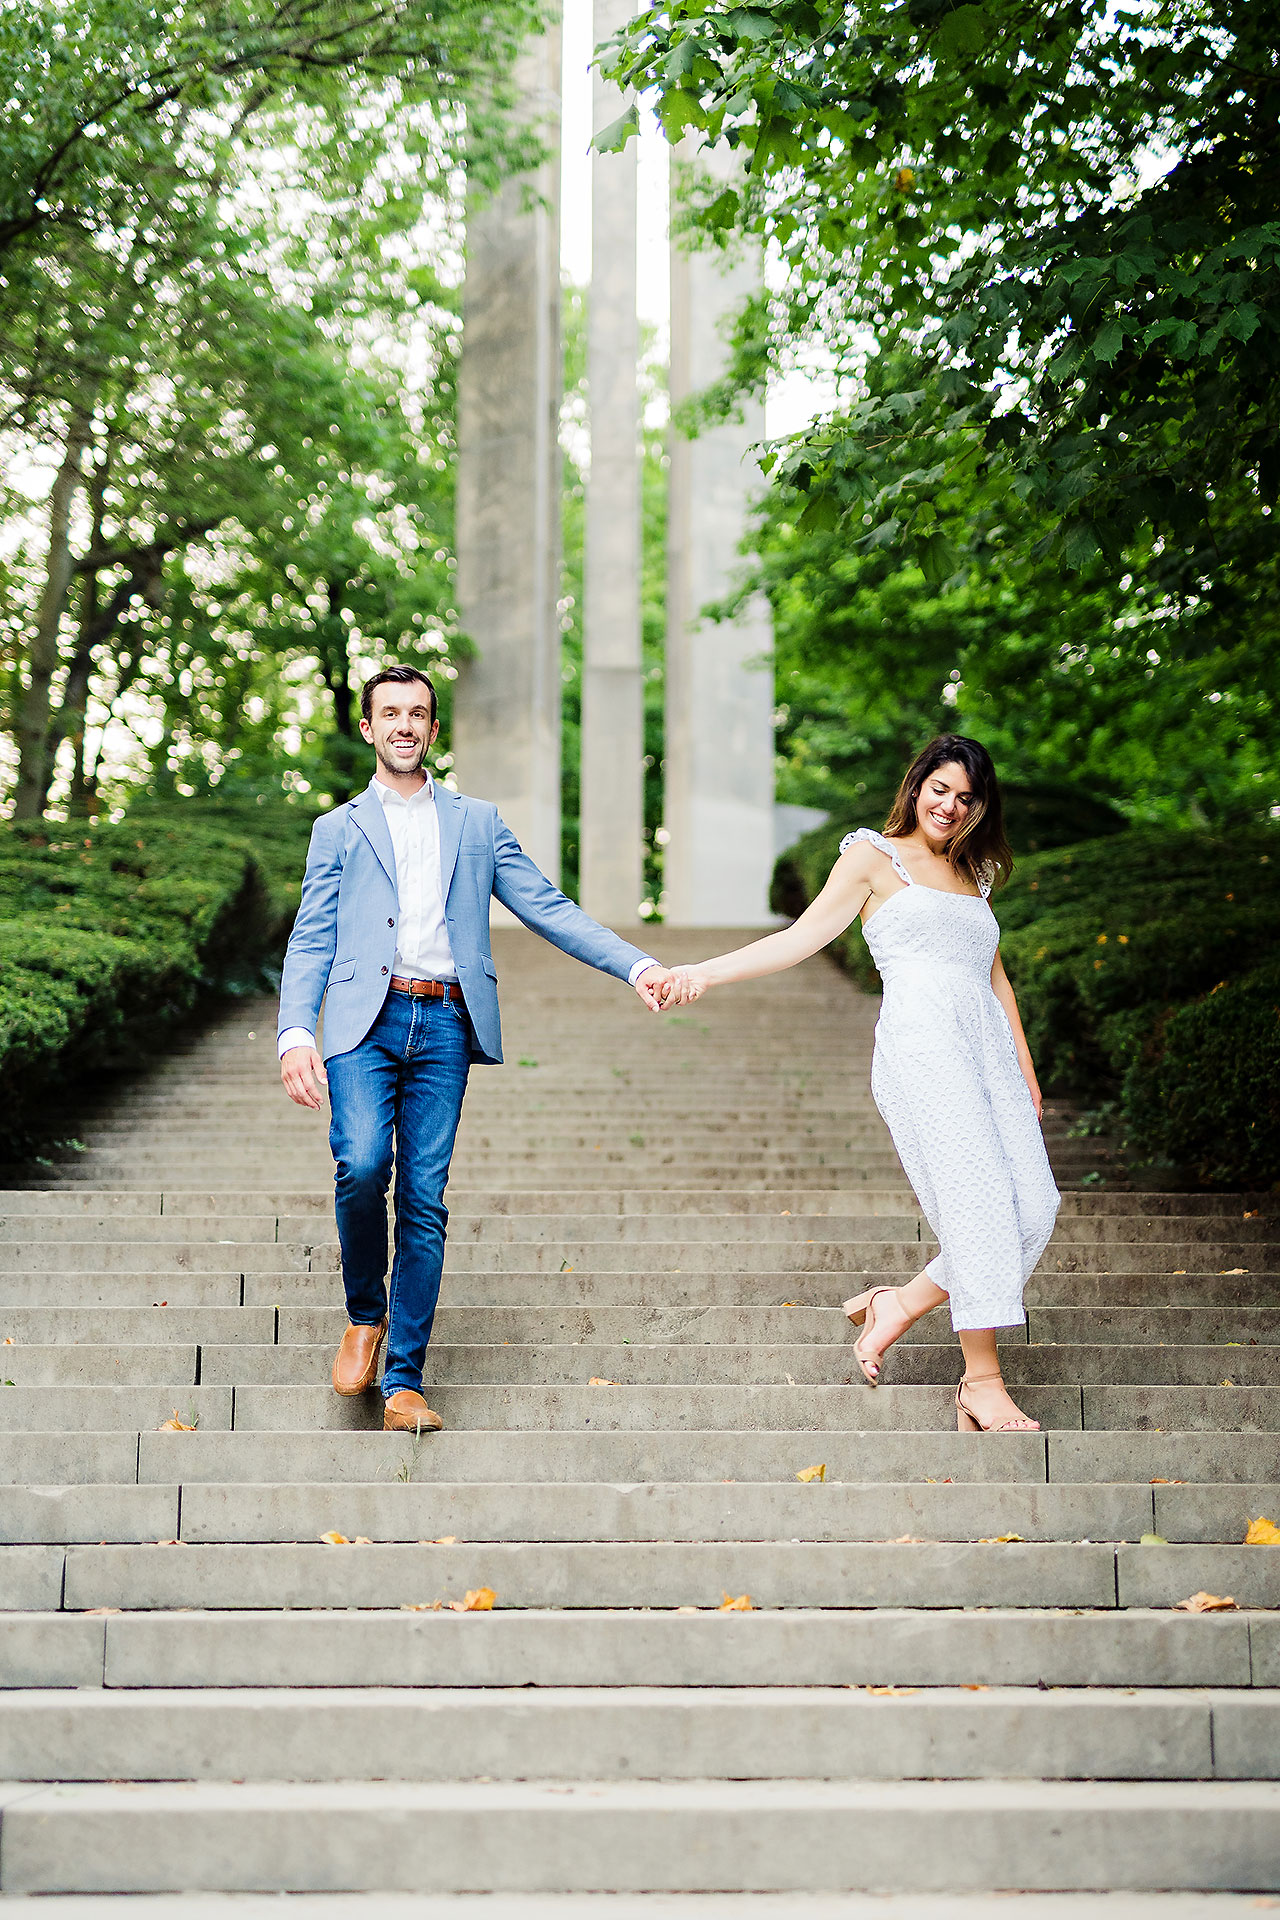 Kate Sawyer Holcomb Gardens Engagement Session 101